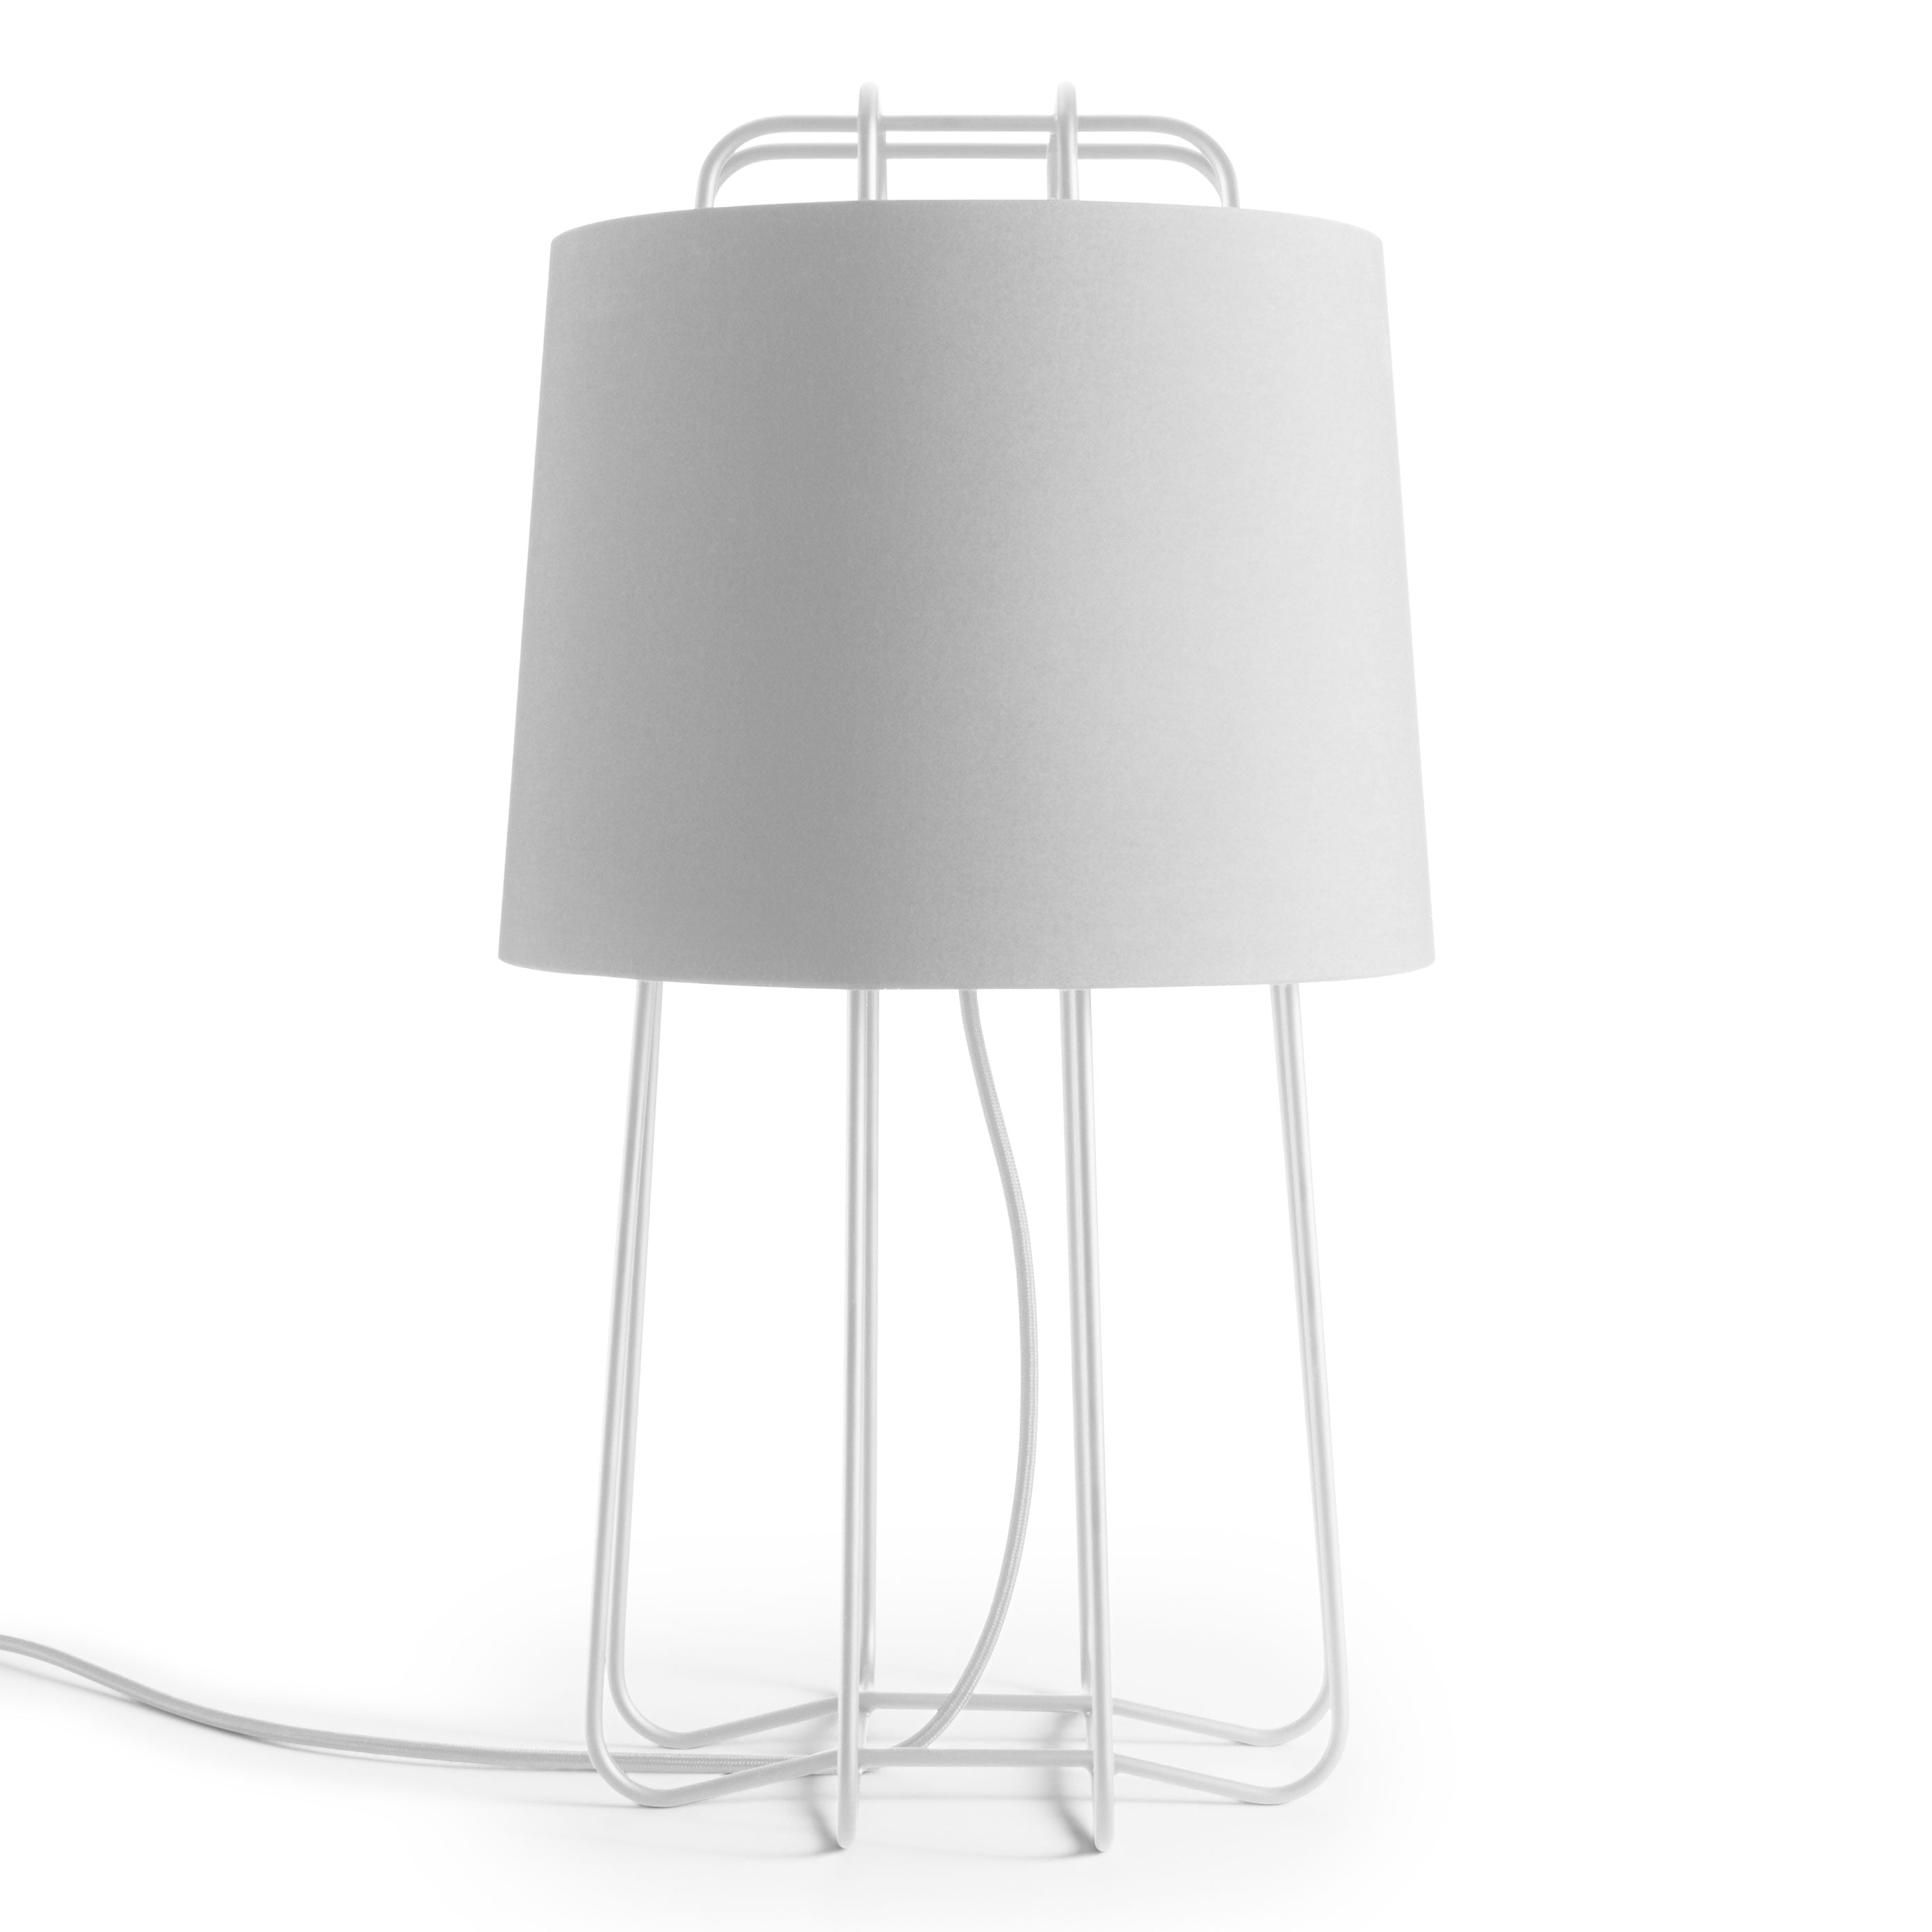 Perimeter Table Lamp - Design Distillery